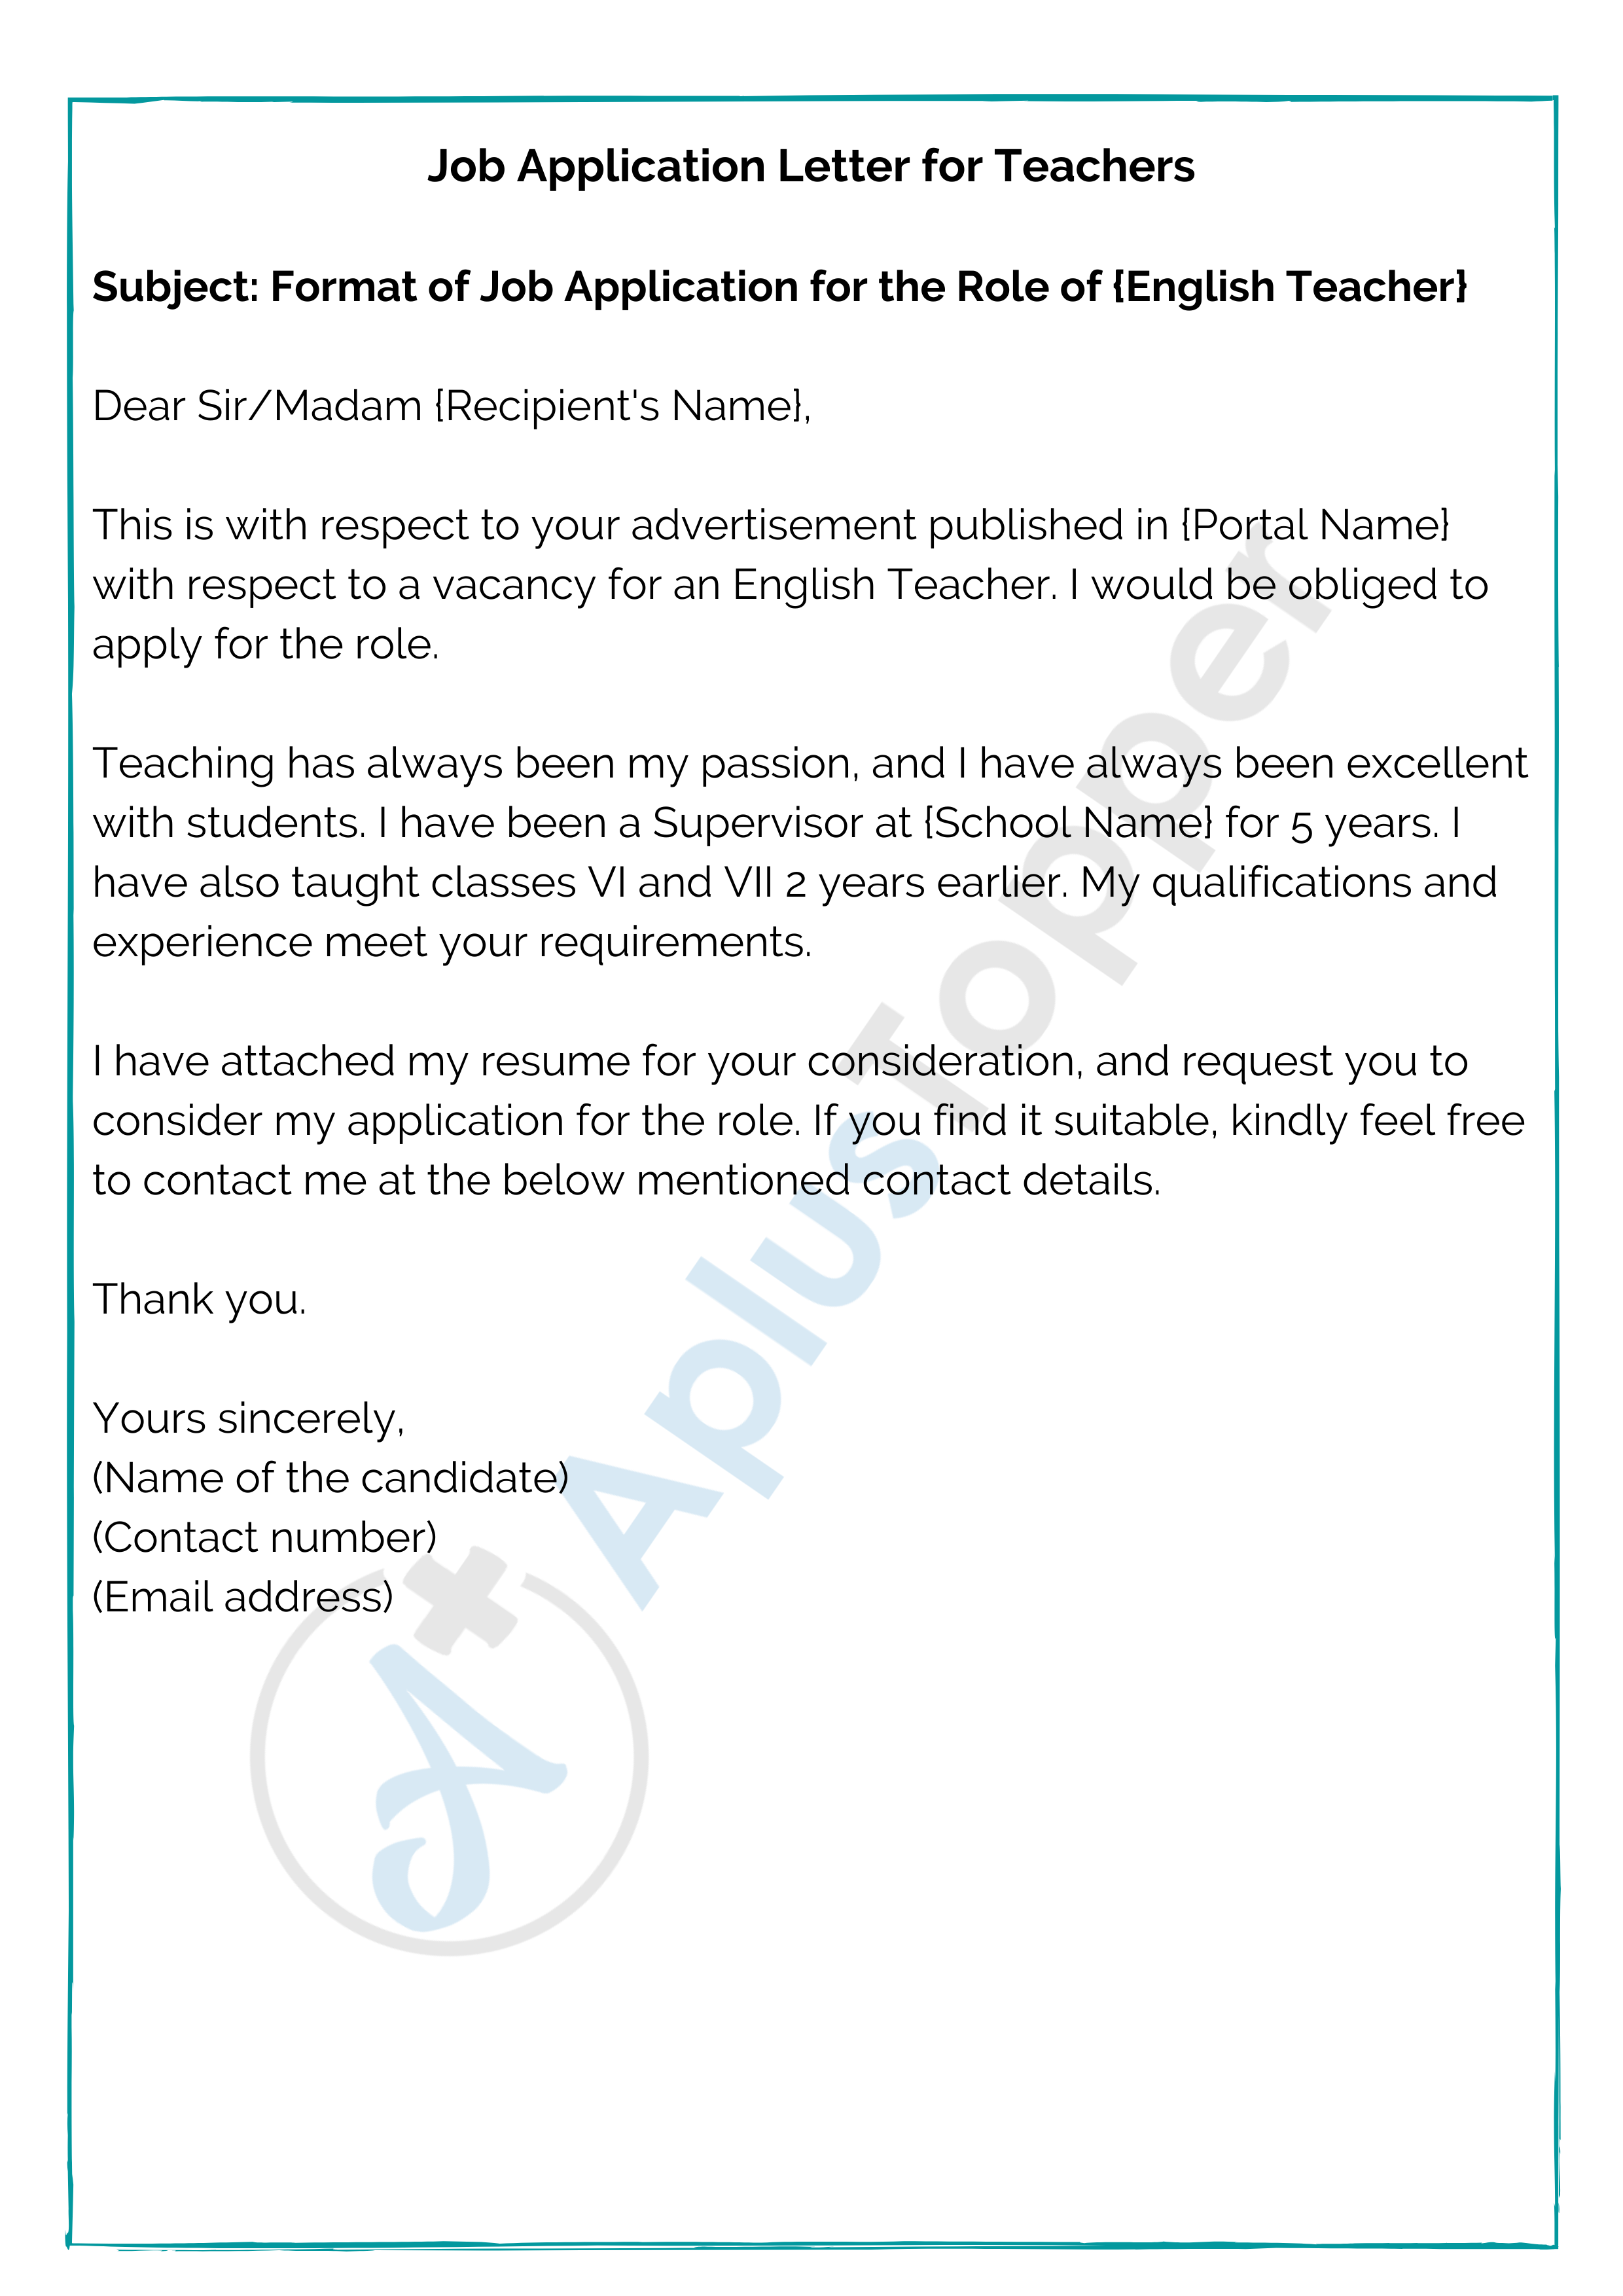 Job Application Format How To Write A Job Application Letter Samples Format A Plus Topper